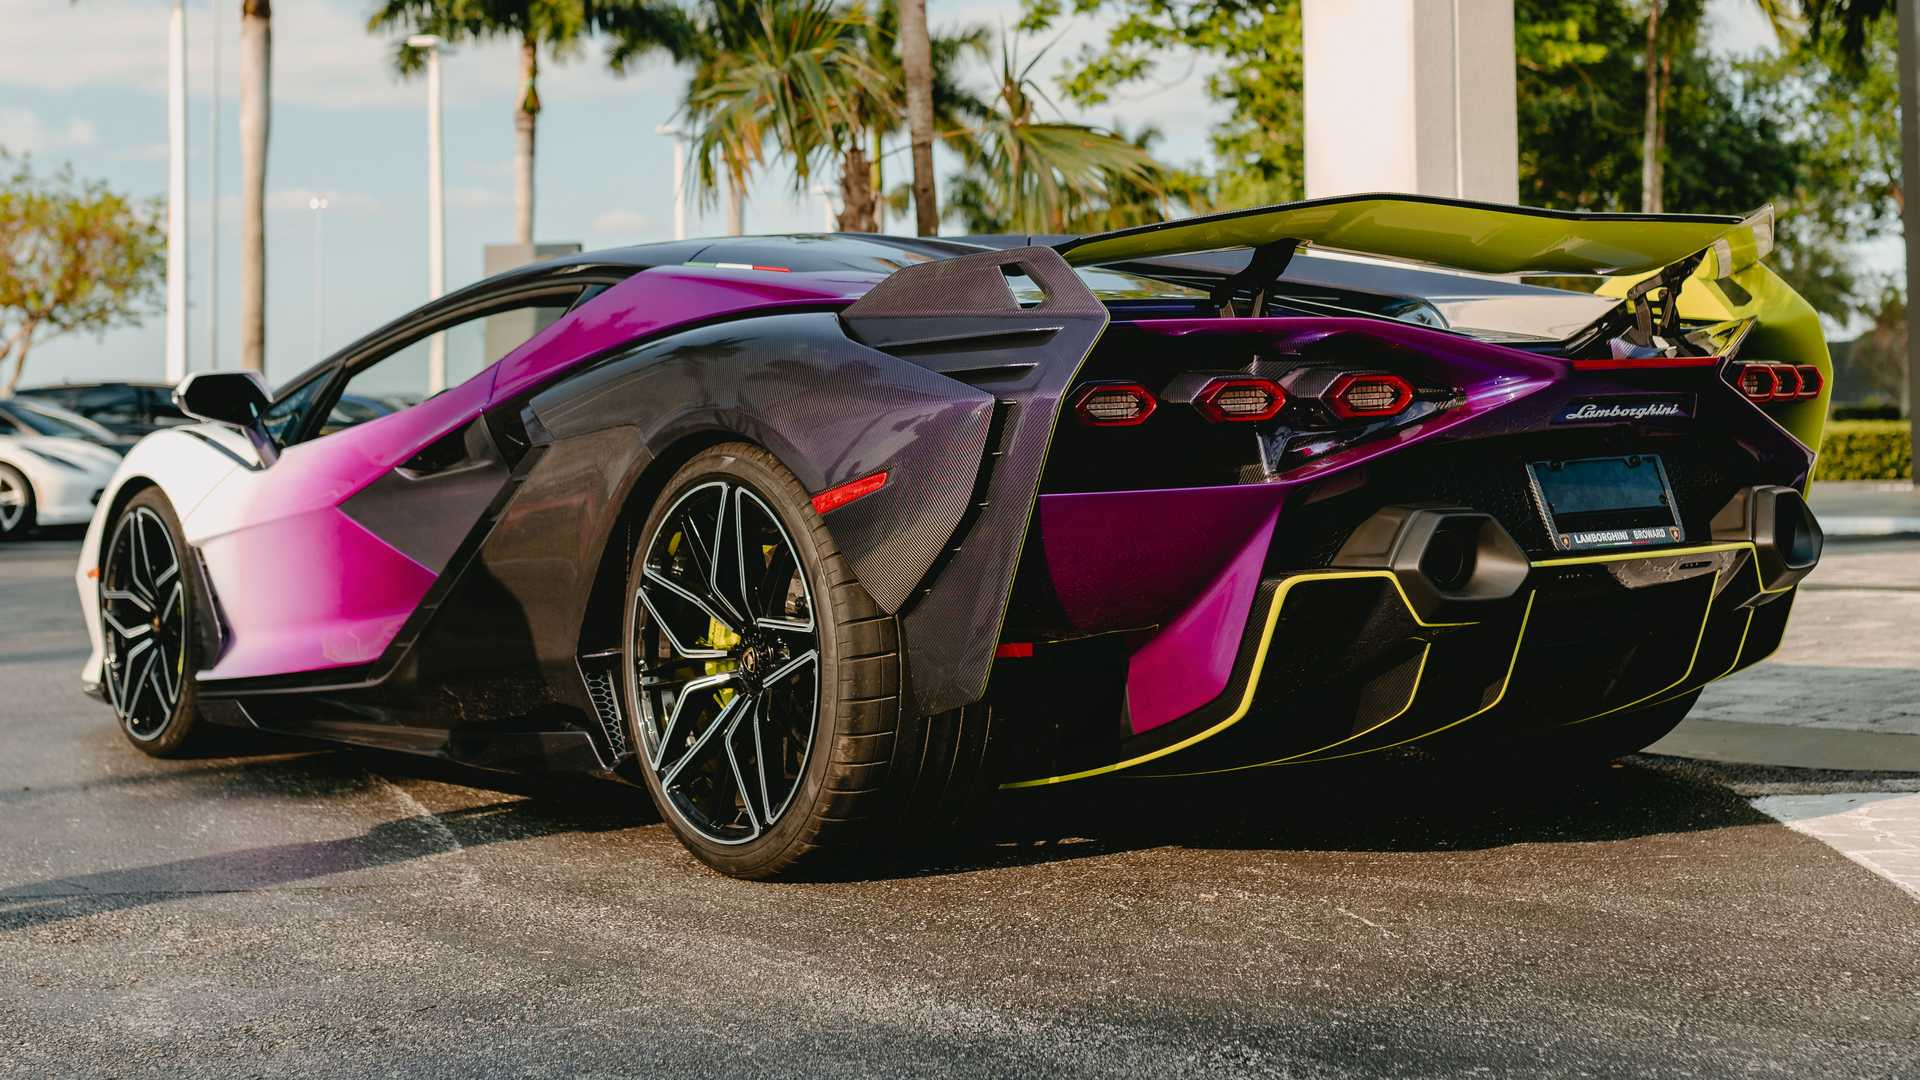 Lamborghini Sian In Purple, Green, And White Rear View Photo By Juan Pablo Saenz